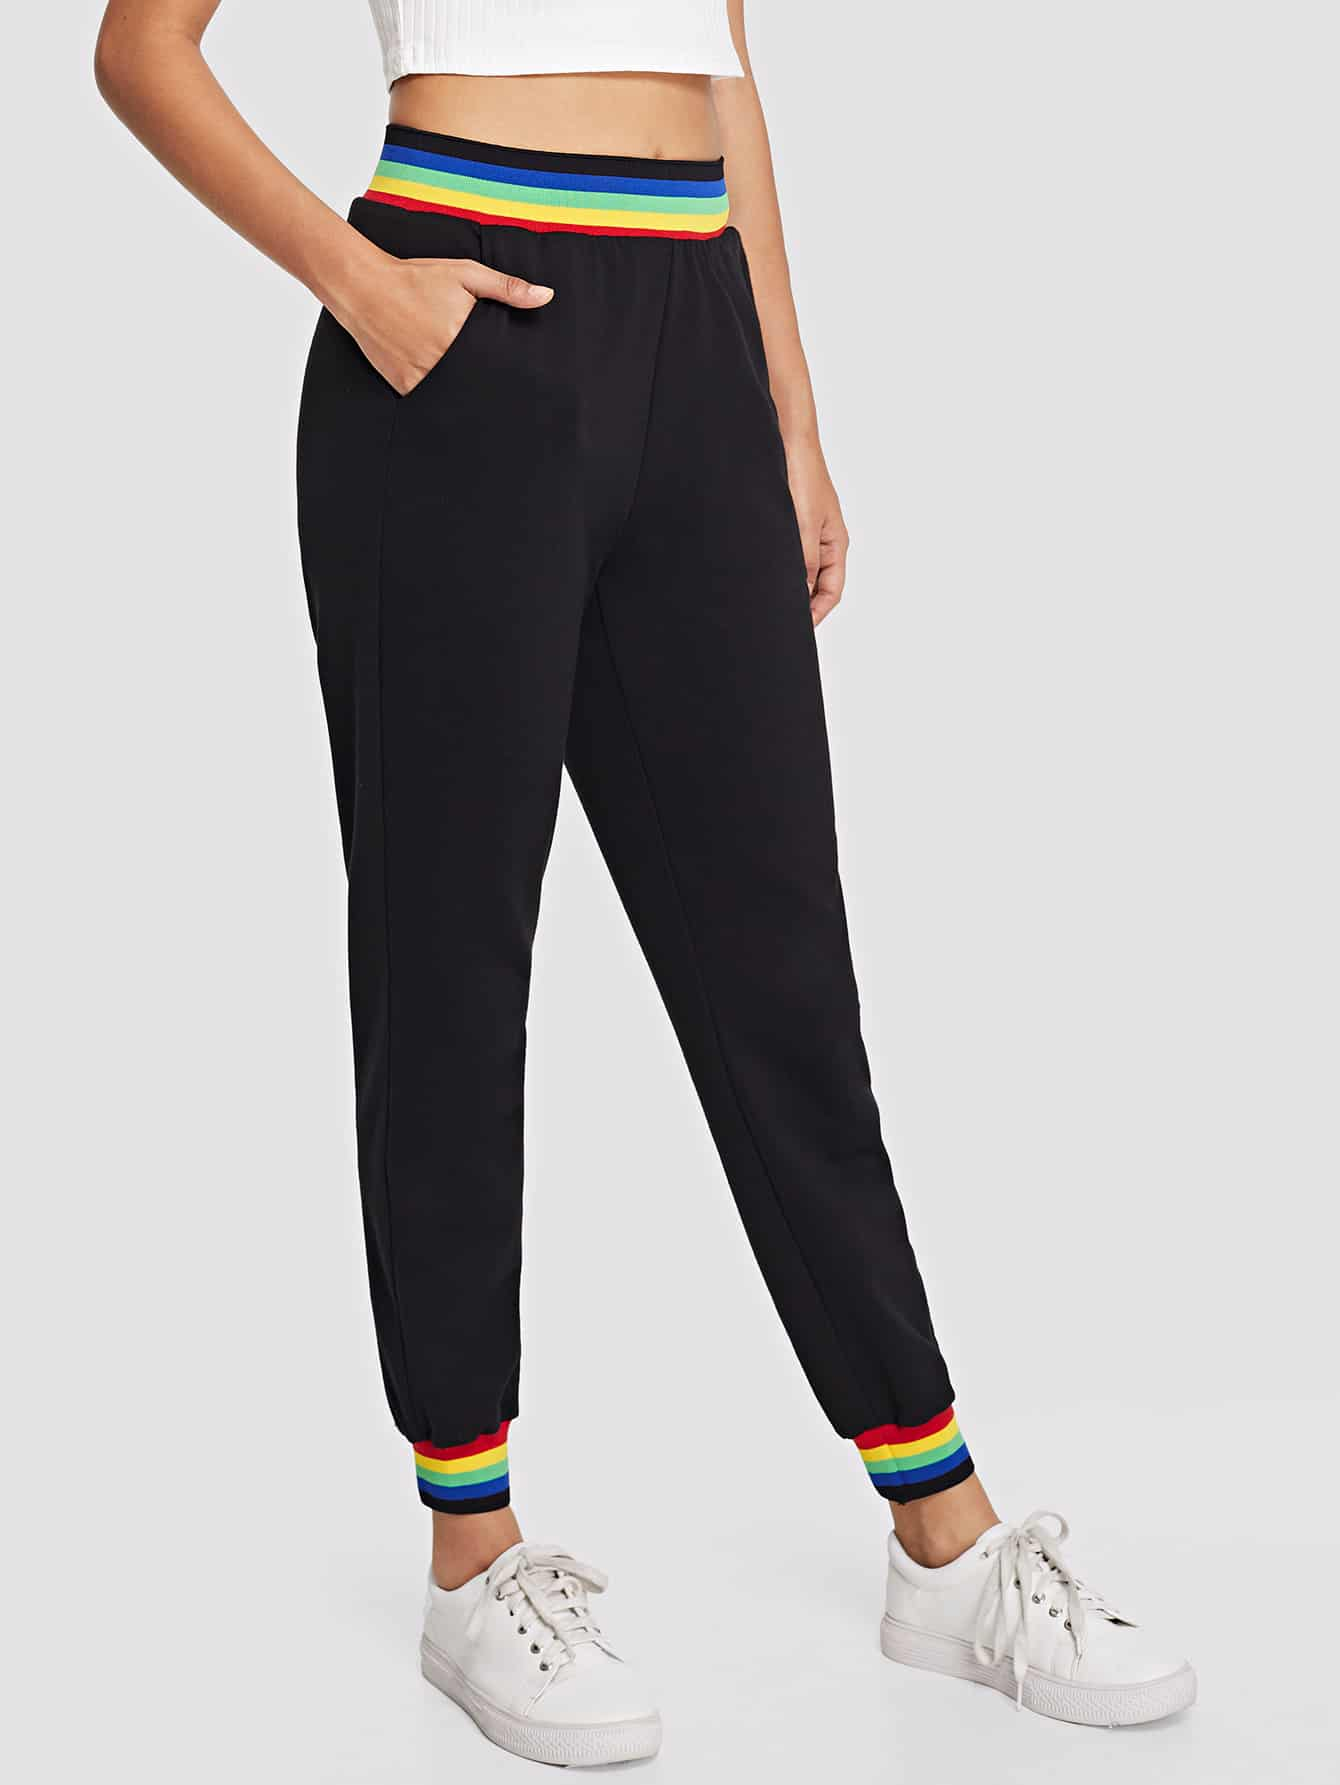 Contrast Striped Trim Sweatpants contrast striped side sweatpants